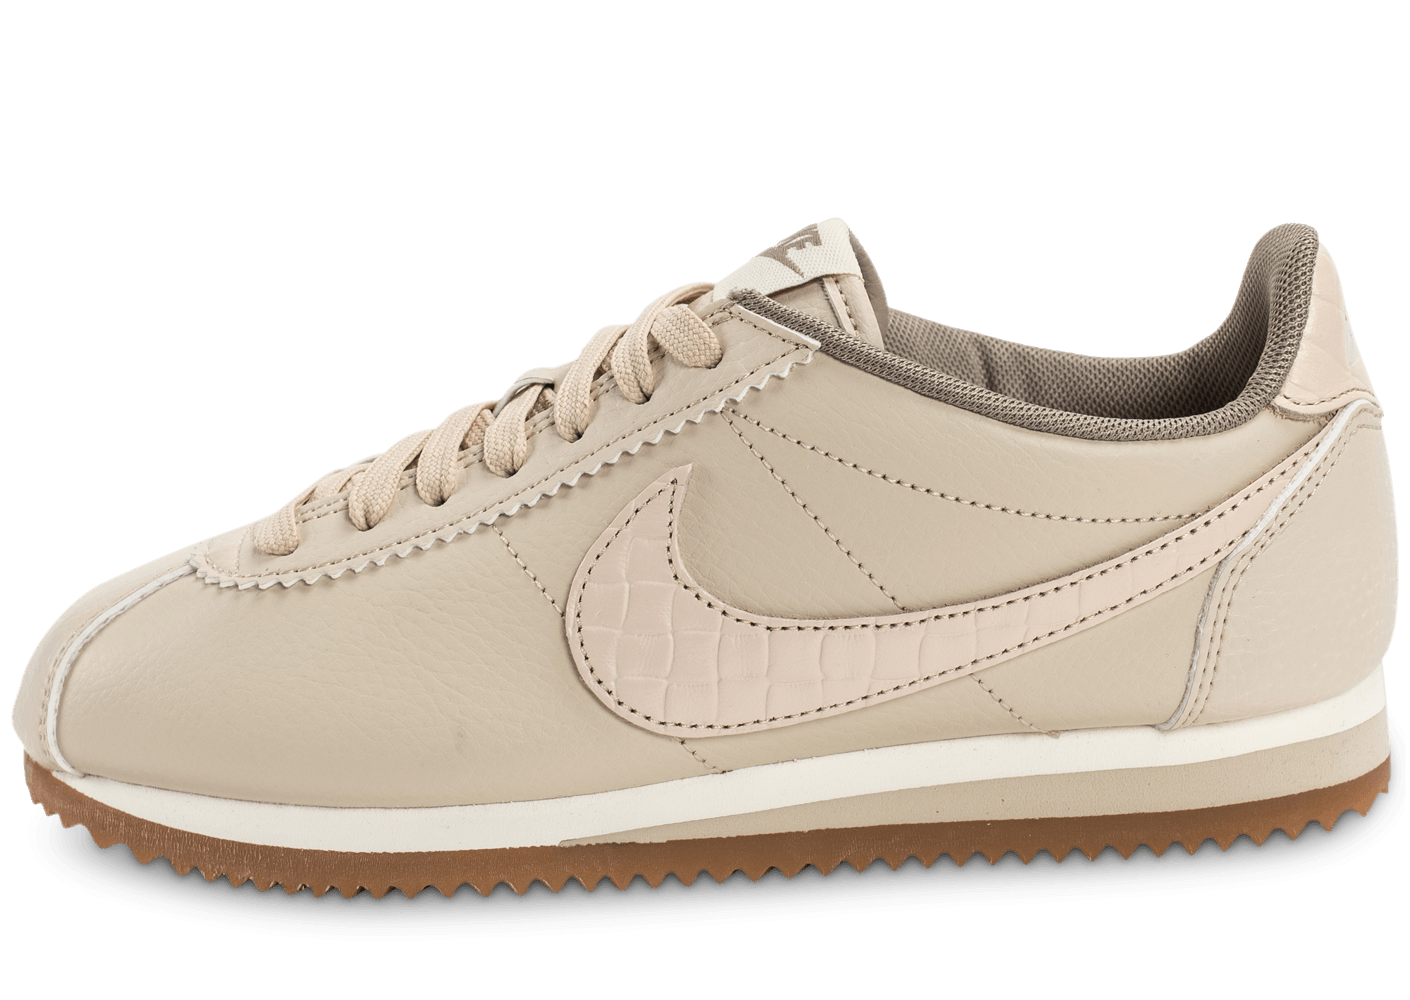 nike classic cortez leather lux beige chaussures pour lyc ens chausport. Black Bedroom Furniture Sets. Home Design Ideas